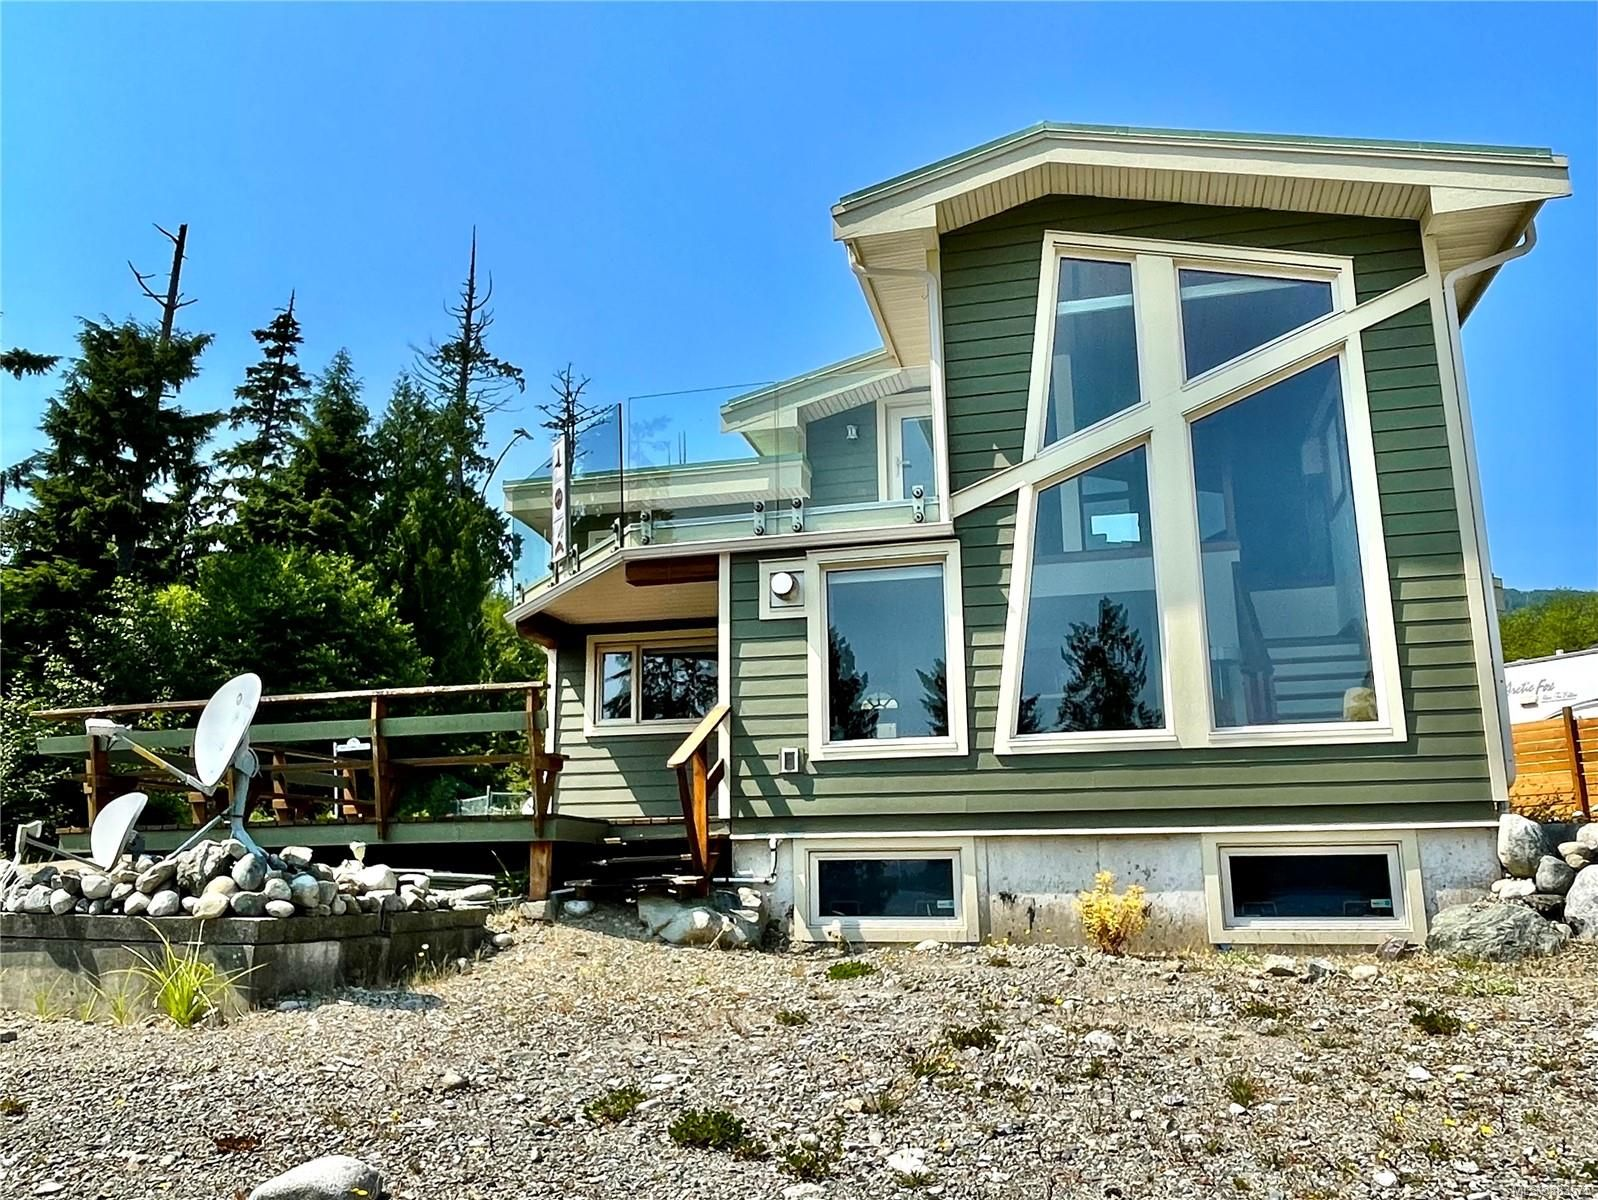 Main Photo: 1154 2nd Ave in : PA Salmon Beach House for sale (Port Alberni)  : MLS®# 883575